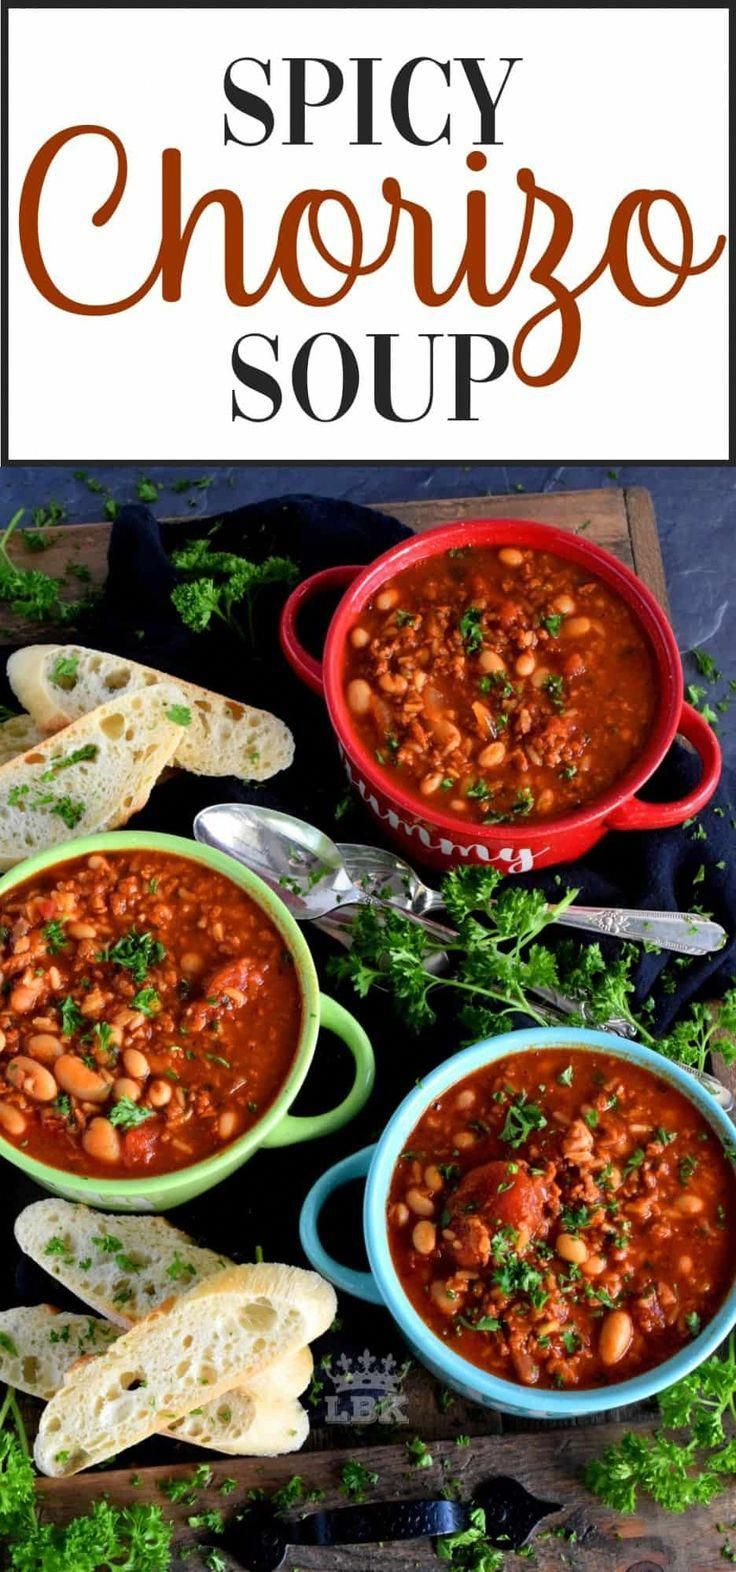 Spicy Chorizo Soup - This soup is thick, hearty, and spicy too! Made with ground chorizo, tomatoes, beans, and rice, this soup is sure to stick to your ribs!  #soup #chorizo #spicy #chili #stew #chorizorecipesappetizers